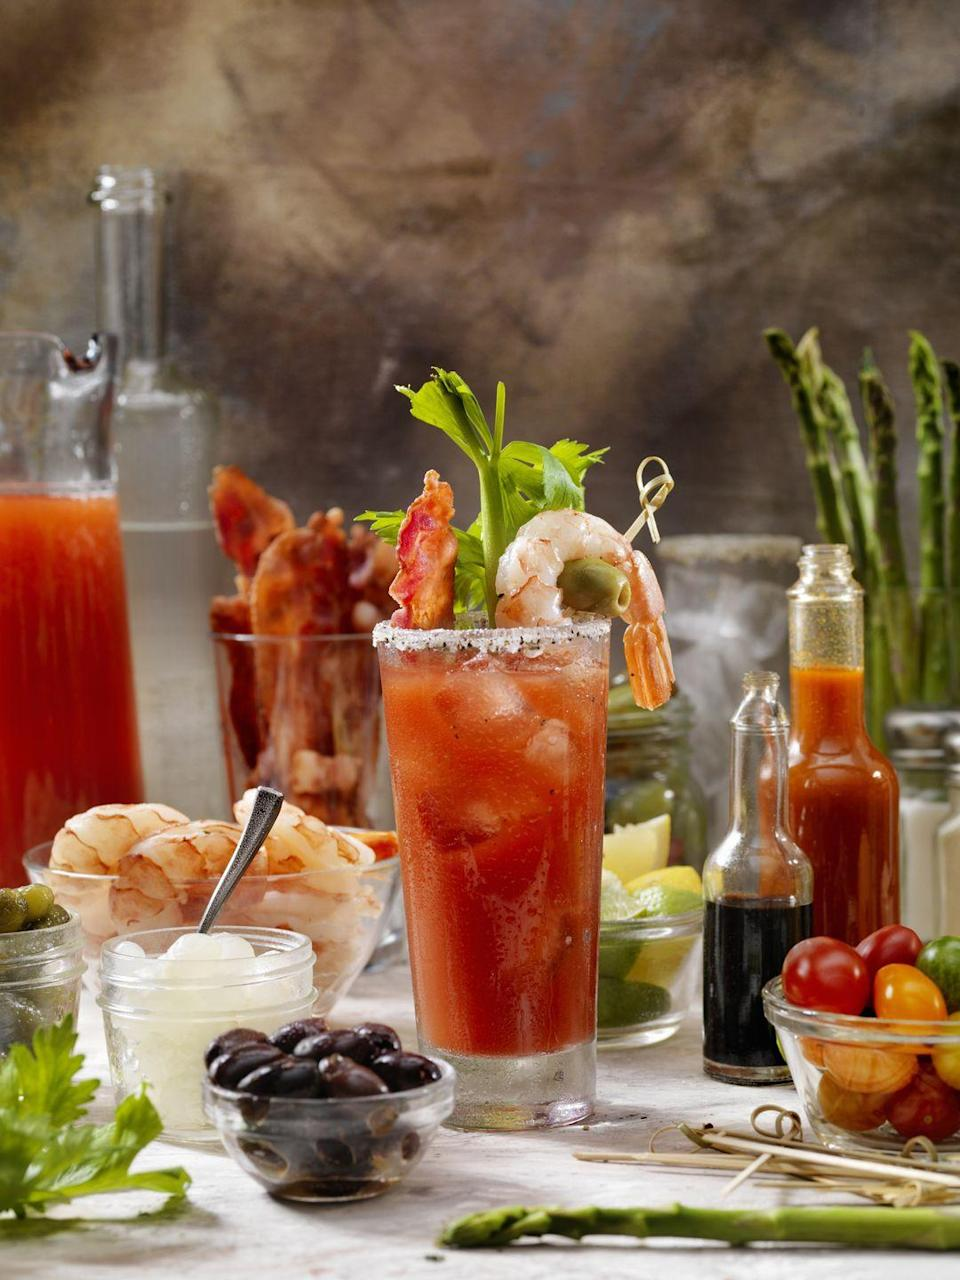 <p>While the dinner's roasting and baking, set out a Bloody Mary bar so guests can make their own brunch classic as they mingle and watch the parade. Bonus points for over-the-top garnishes like bacon, shrimp, and lobster. </p>